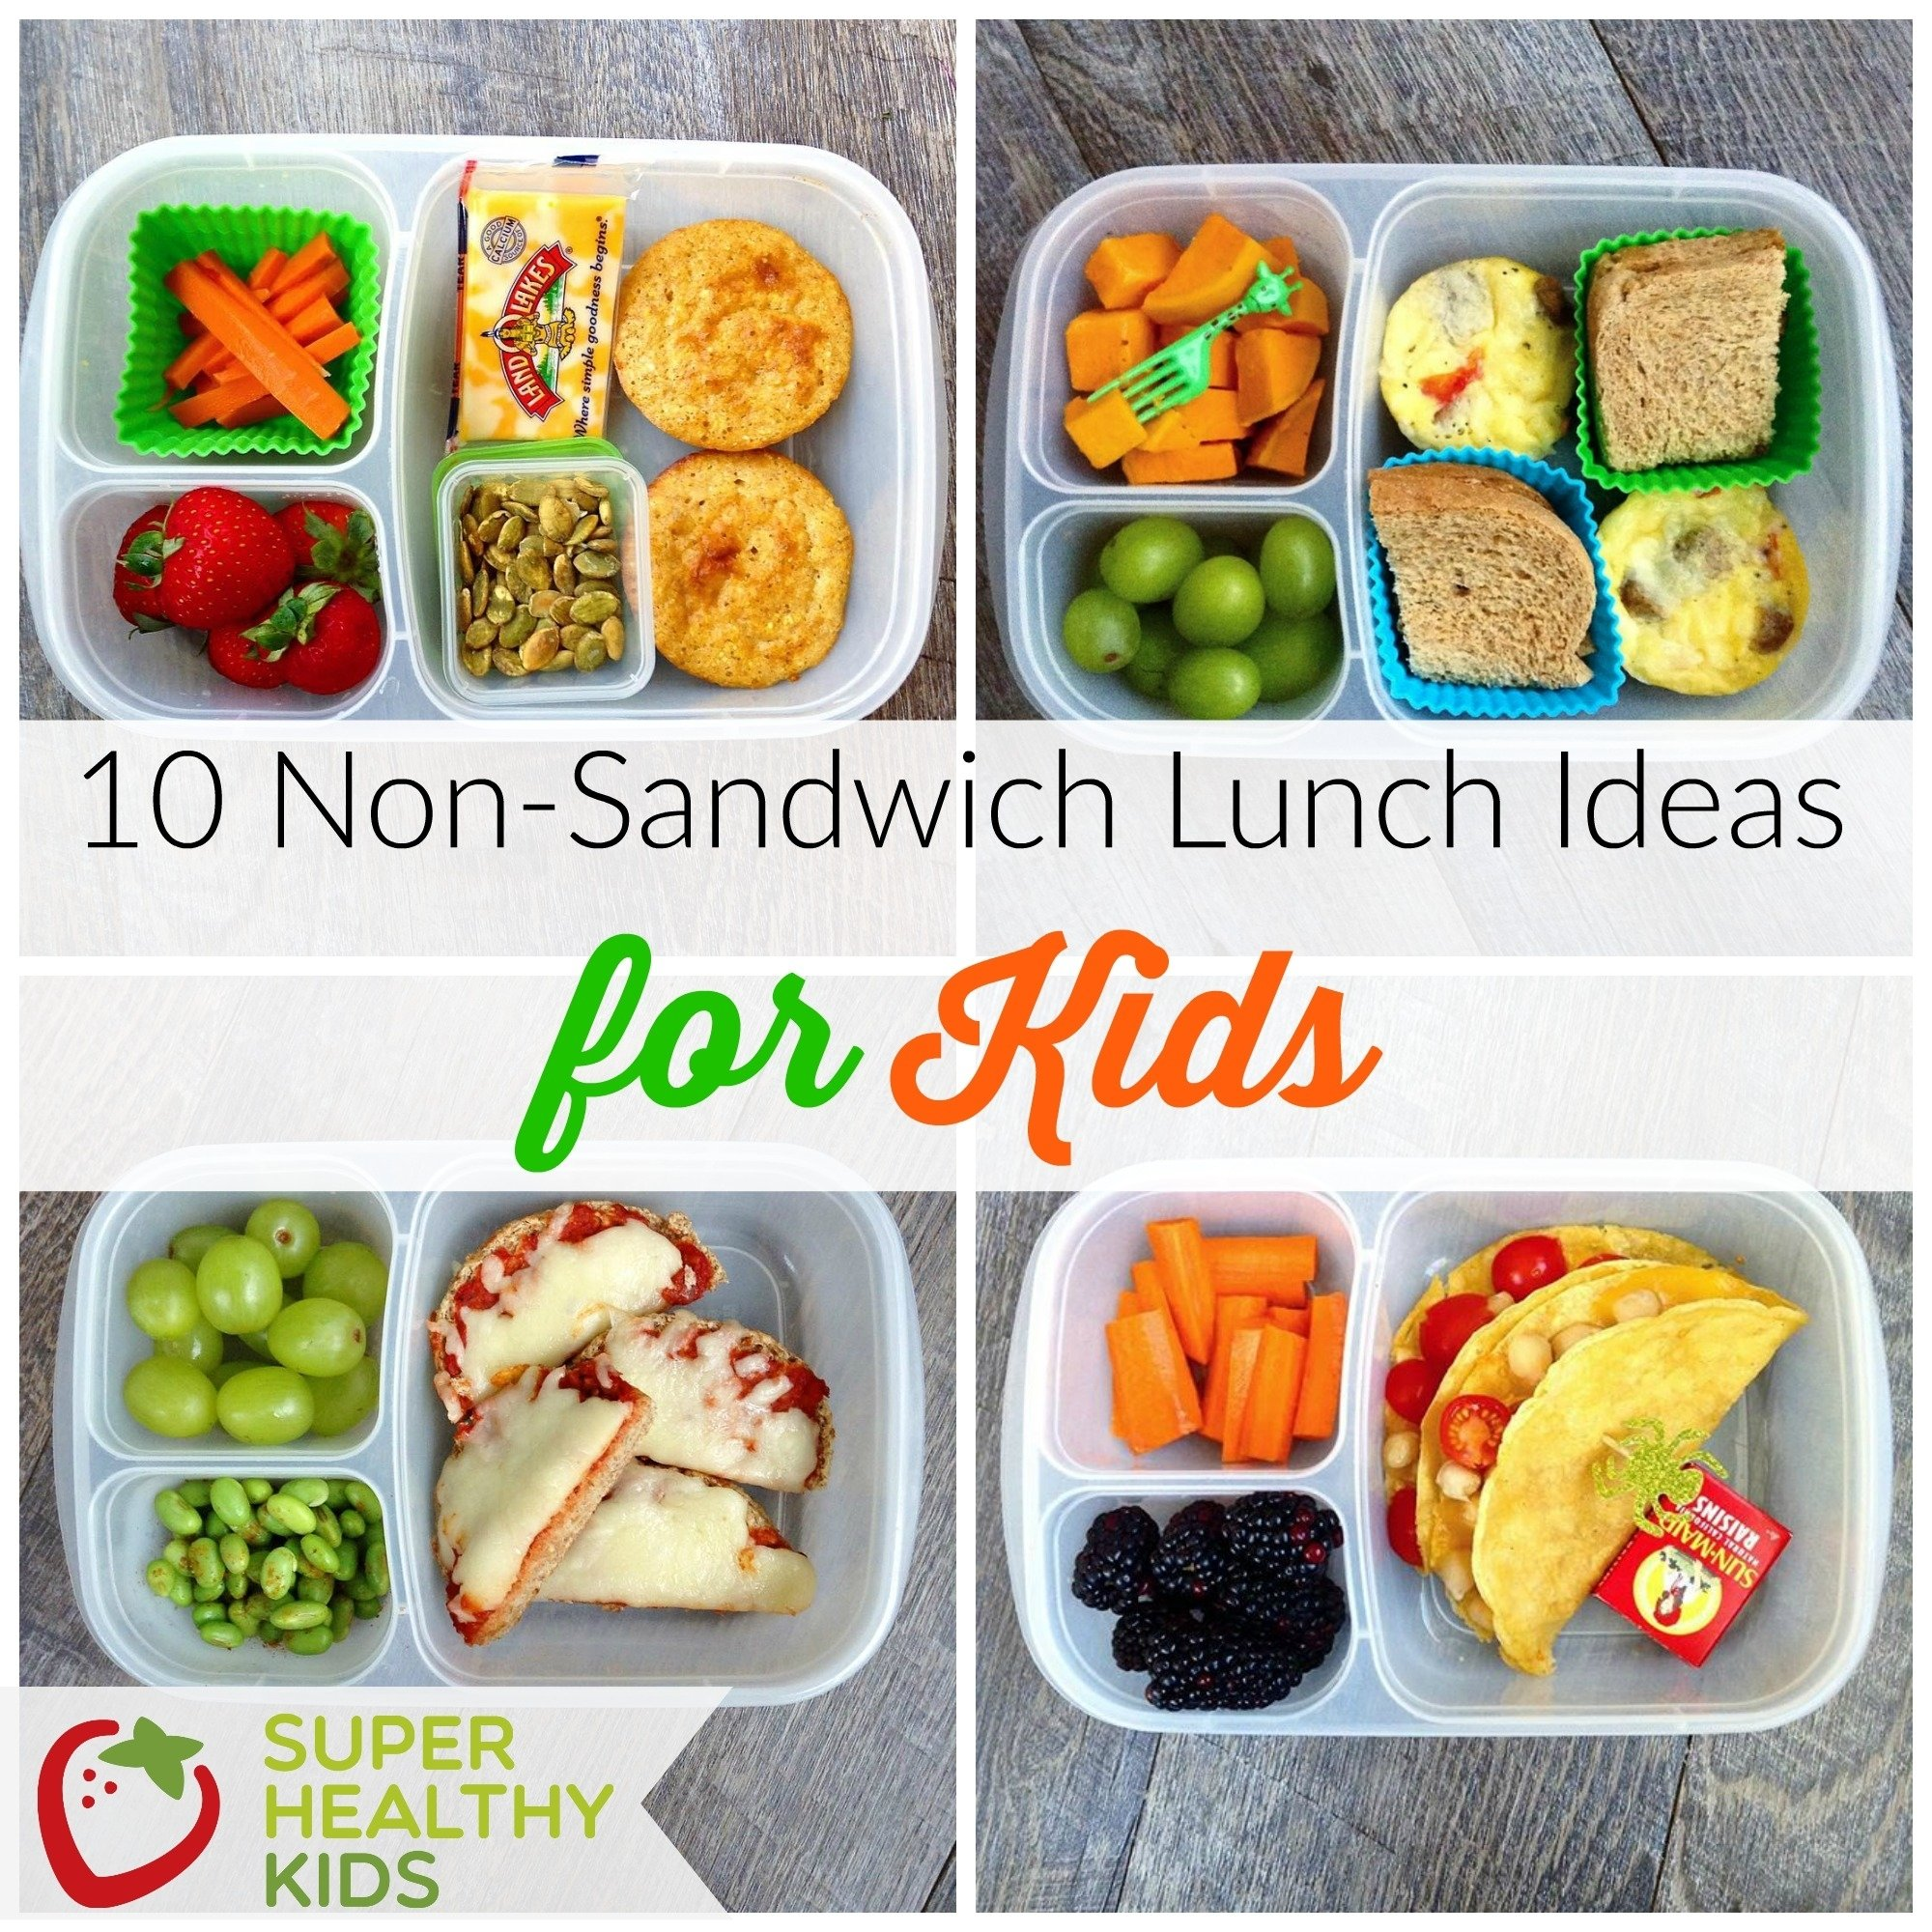 10 non-sandwich lunch ideas for kids | healthy ideas for kids